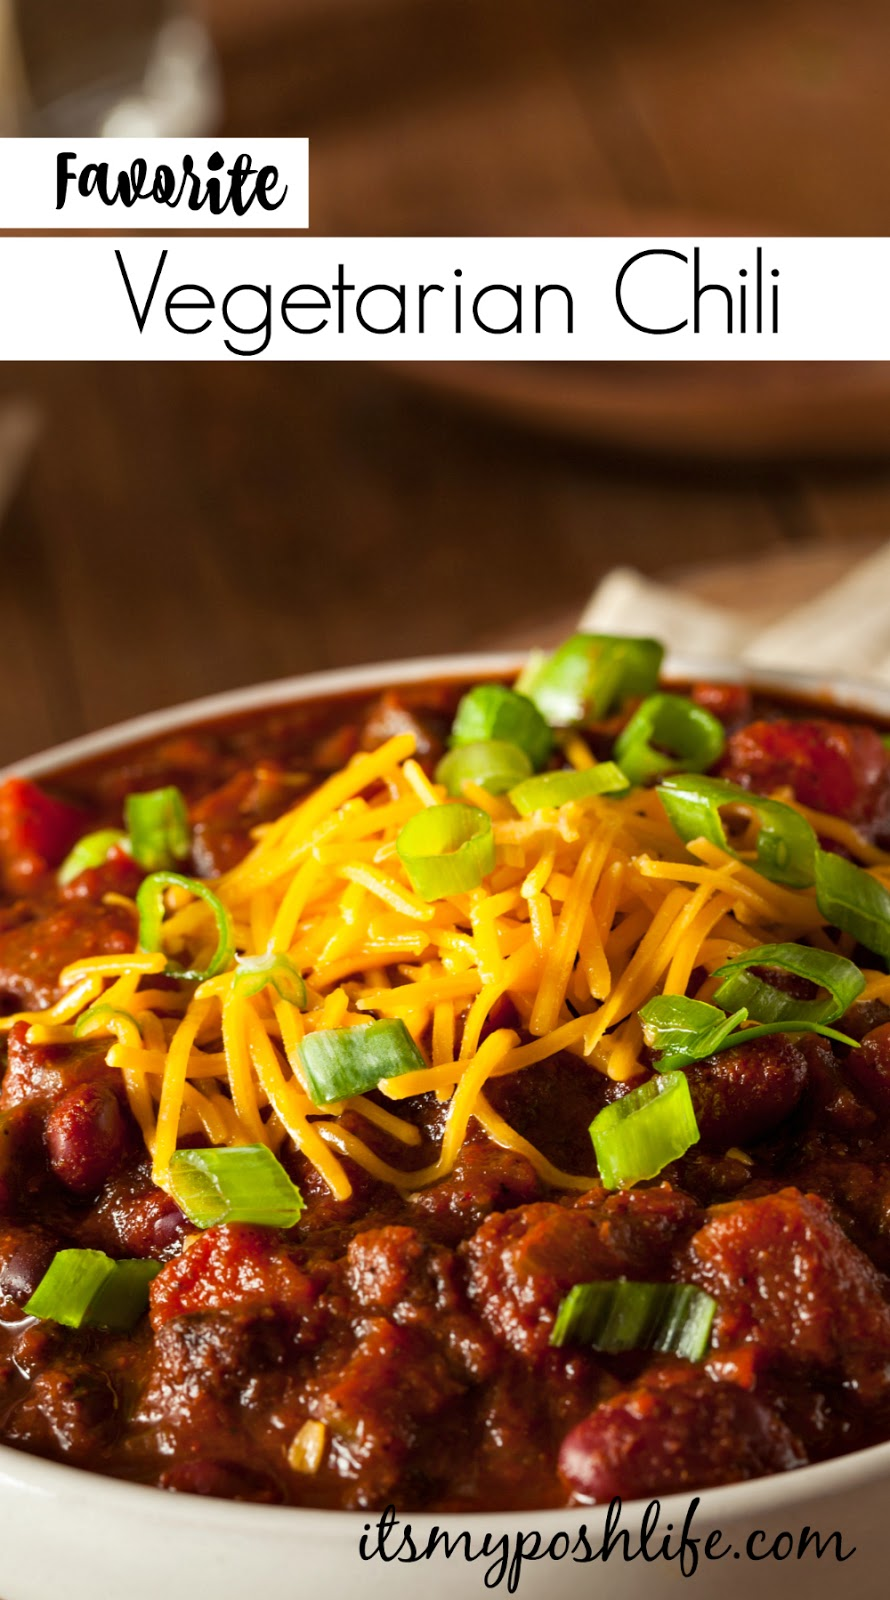 Favorite Vegetarian Chili Recipe